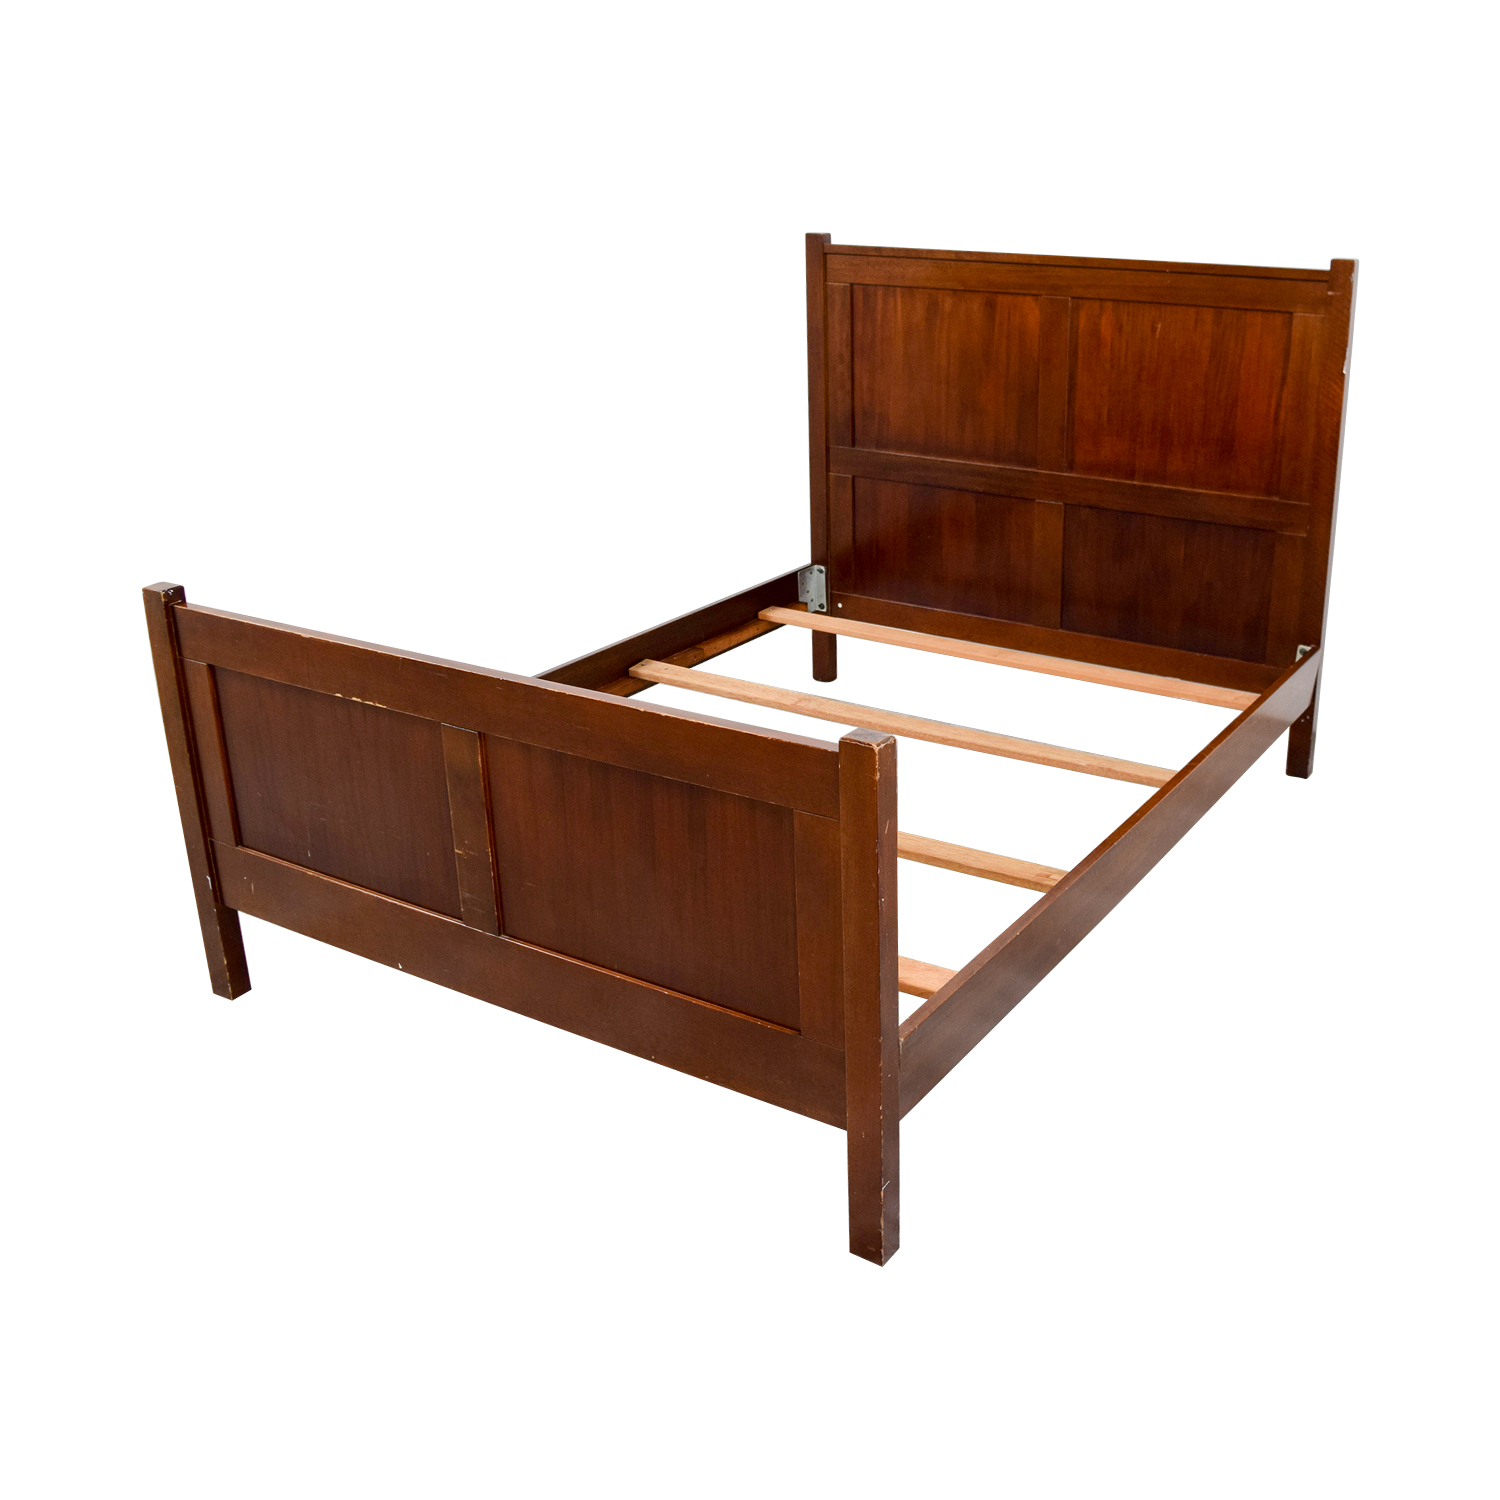 Pottery Barn Pottery Barn Wood Full Bed Frame price